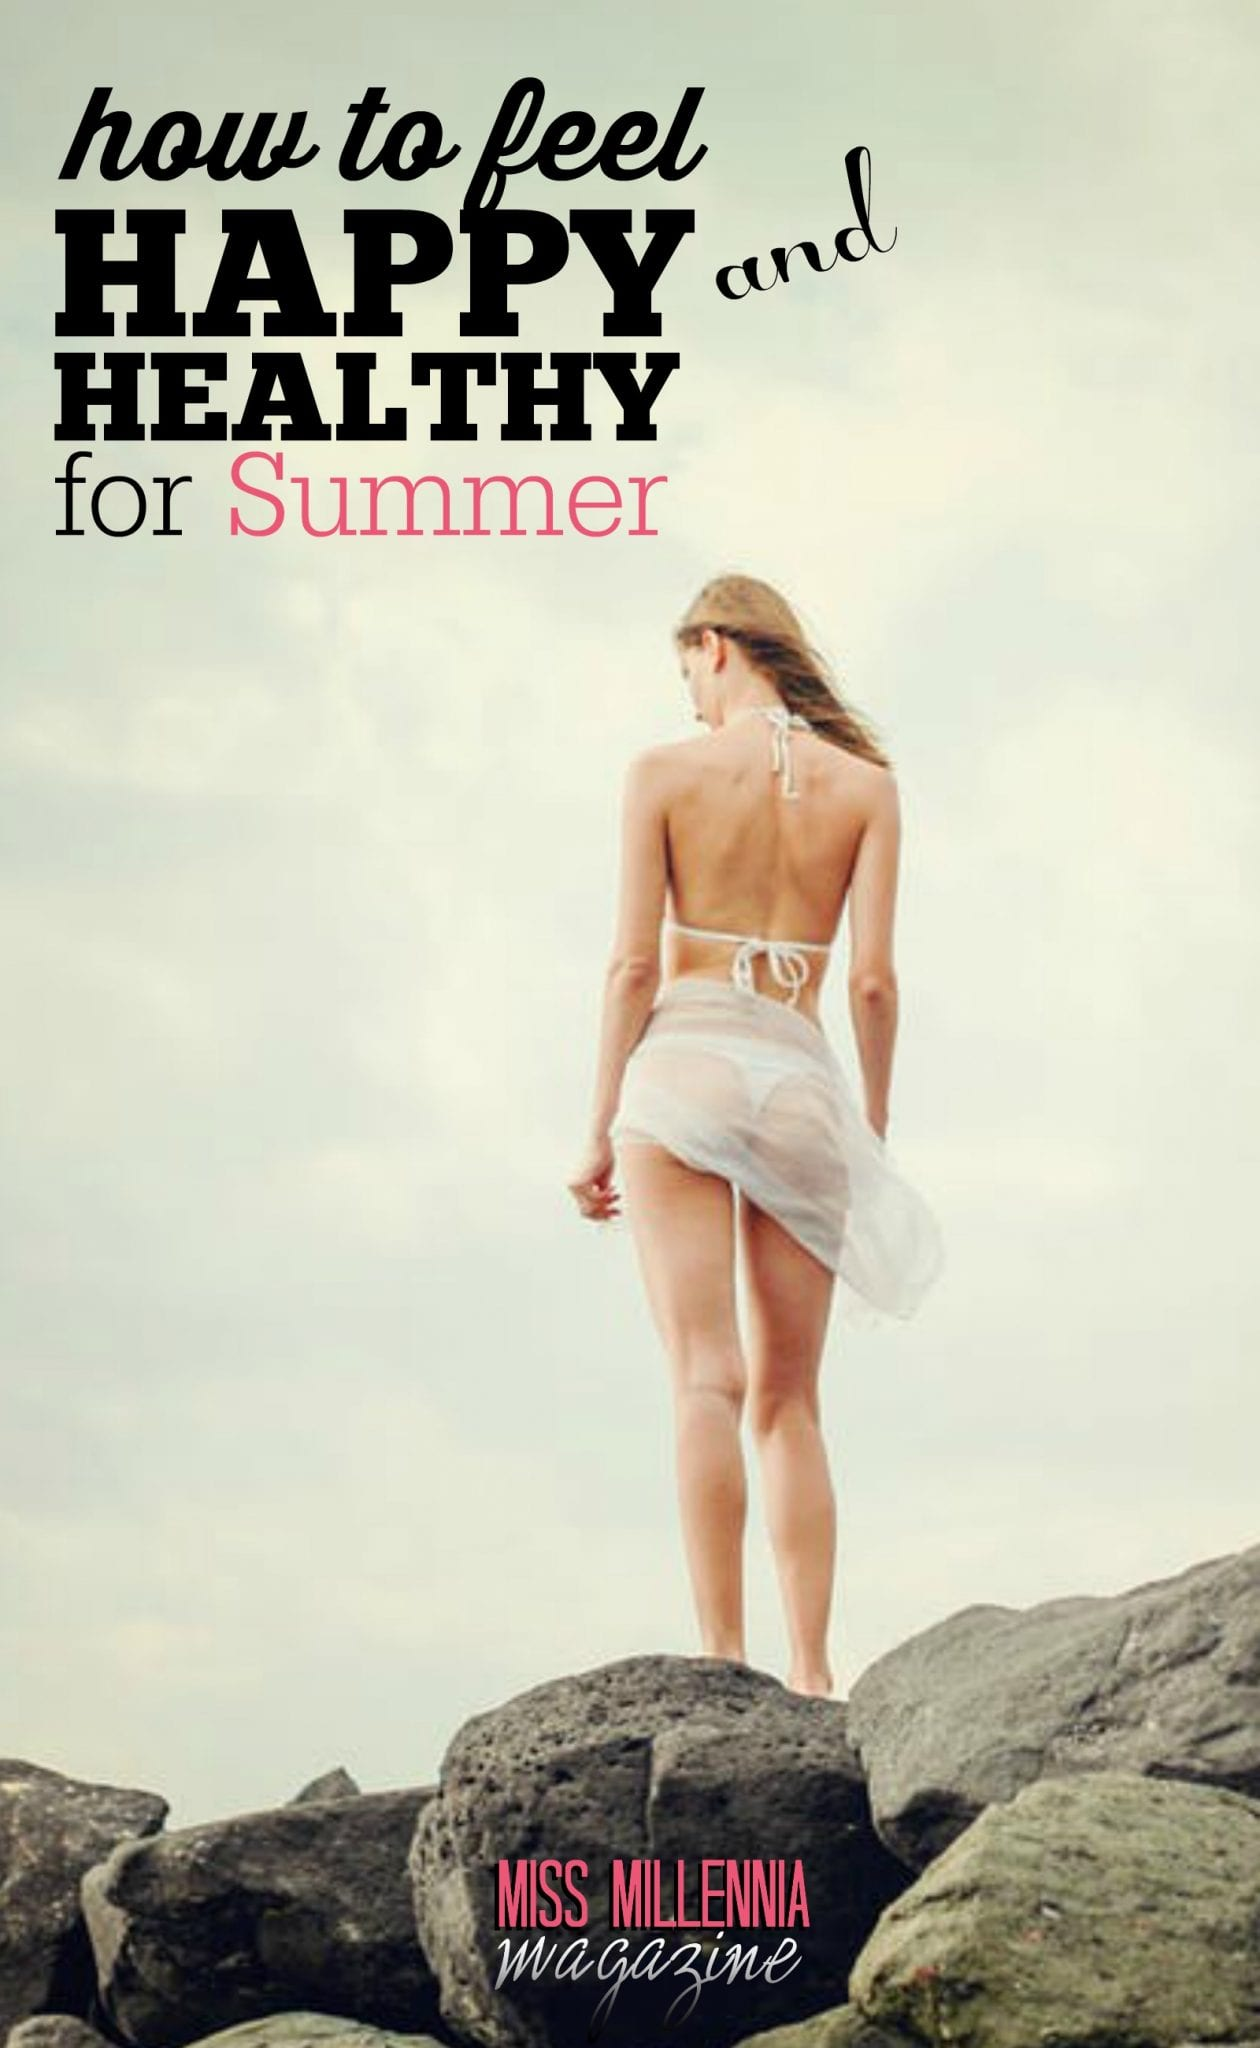 Time to bring out those swimsuits! Here are 4 ways to feel happy and be healthy this summer, no matter your size or shape.